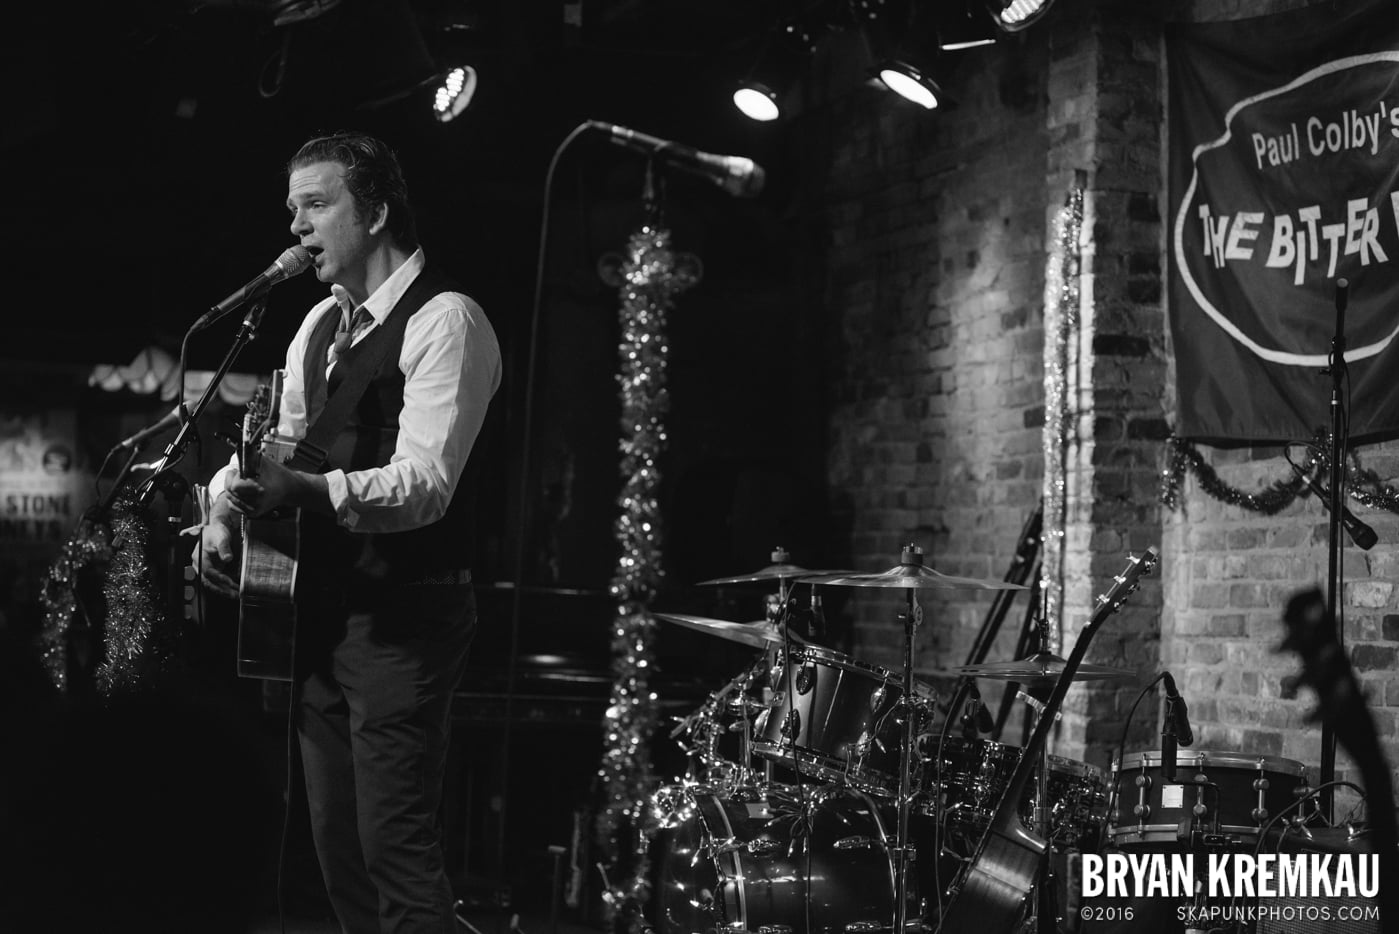 Chris Trapper @ The Bitter End, NYC - 12.5.14 (5)